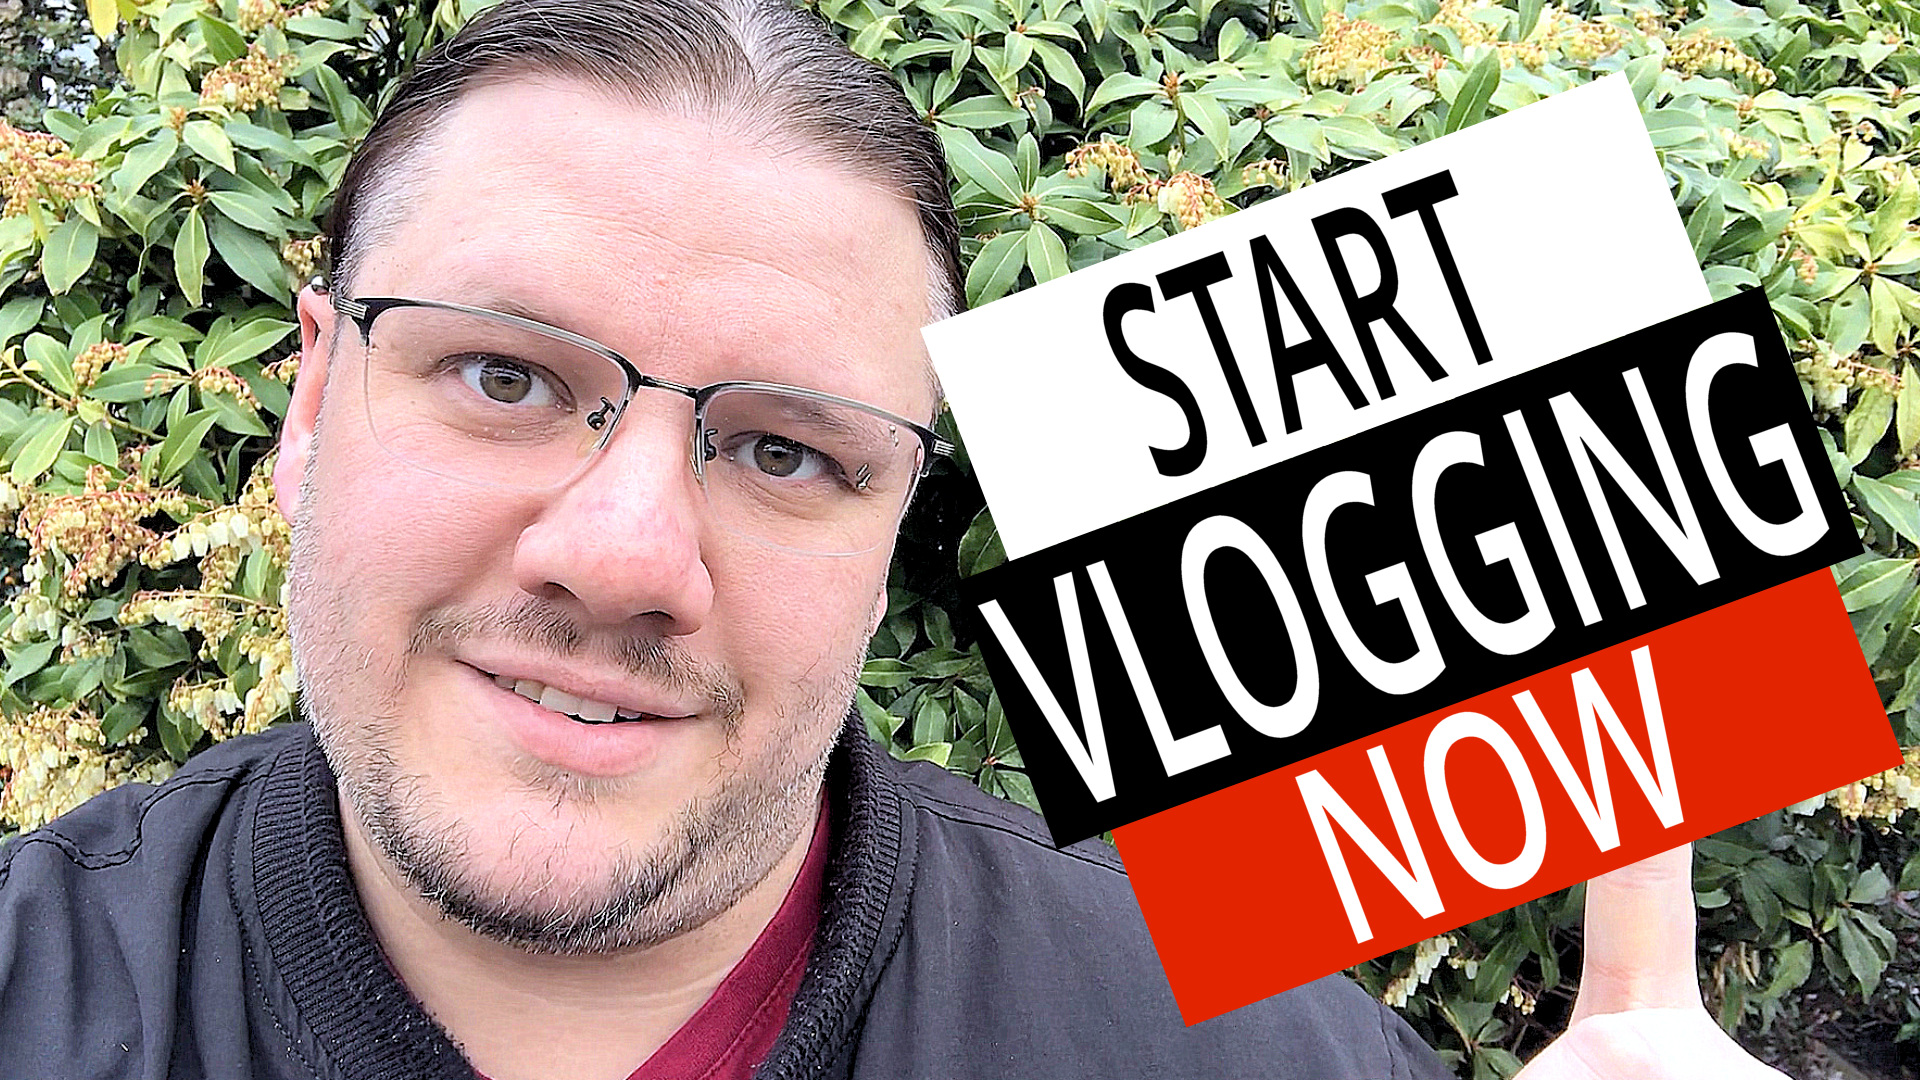 alan spicer,alanspicer,How To Vlog On The Go,How To Vlog On YouTube,How To Vlog,how to vlog with iphone,how to vlog with a phone,how to vlog in public,vlogging in public tips,youtube vlogging tips,how to start vlogging,vlogging in public,how to make a vlog,how to become a vlogger,how to vlog in public without fear,vlogging tips,how to vlog on your phone,public vlogging,vlogging in public for the first time,public how to vlog,how to vlog for beginners